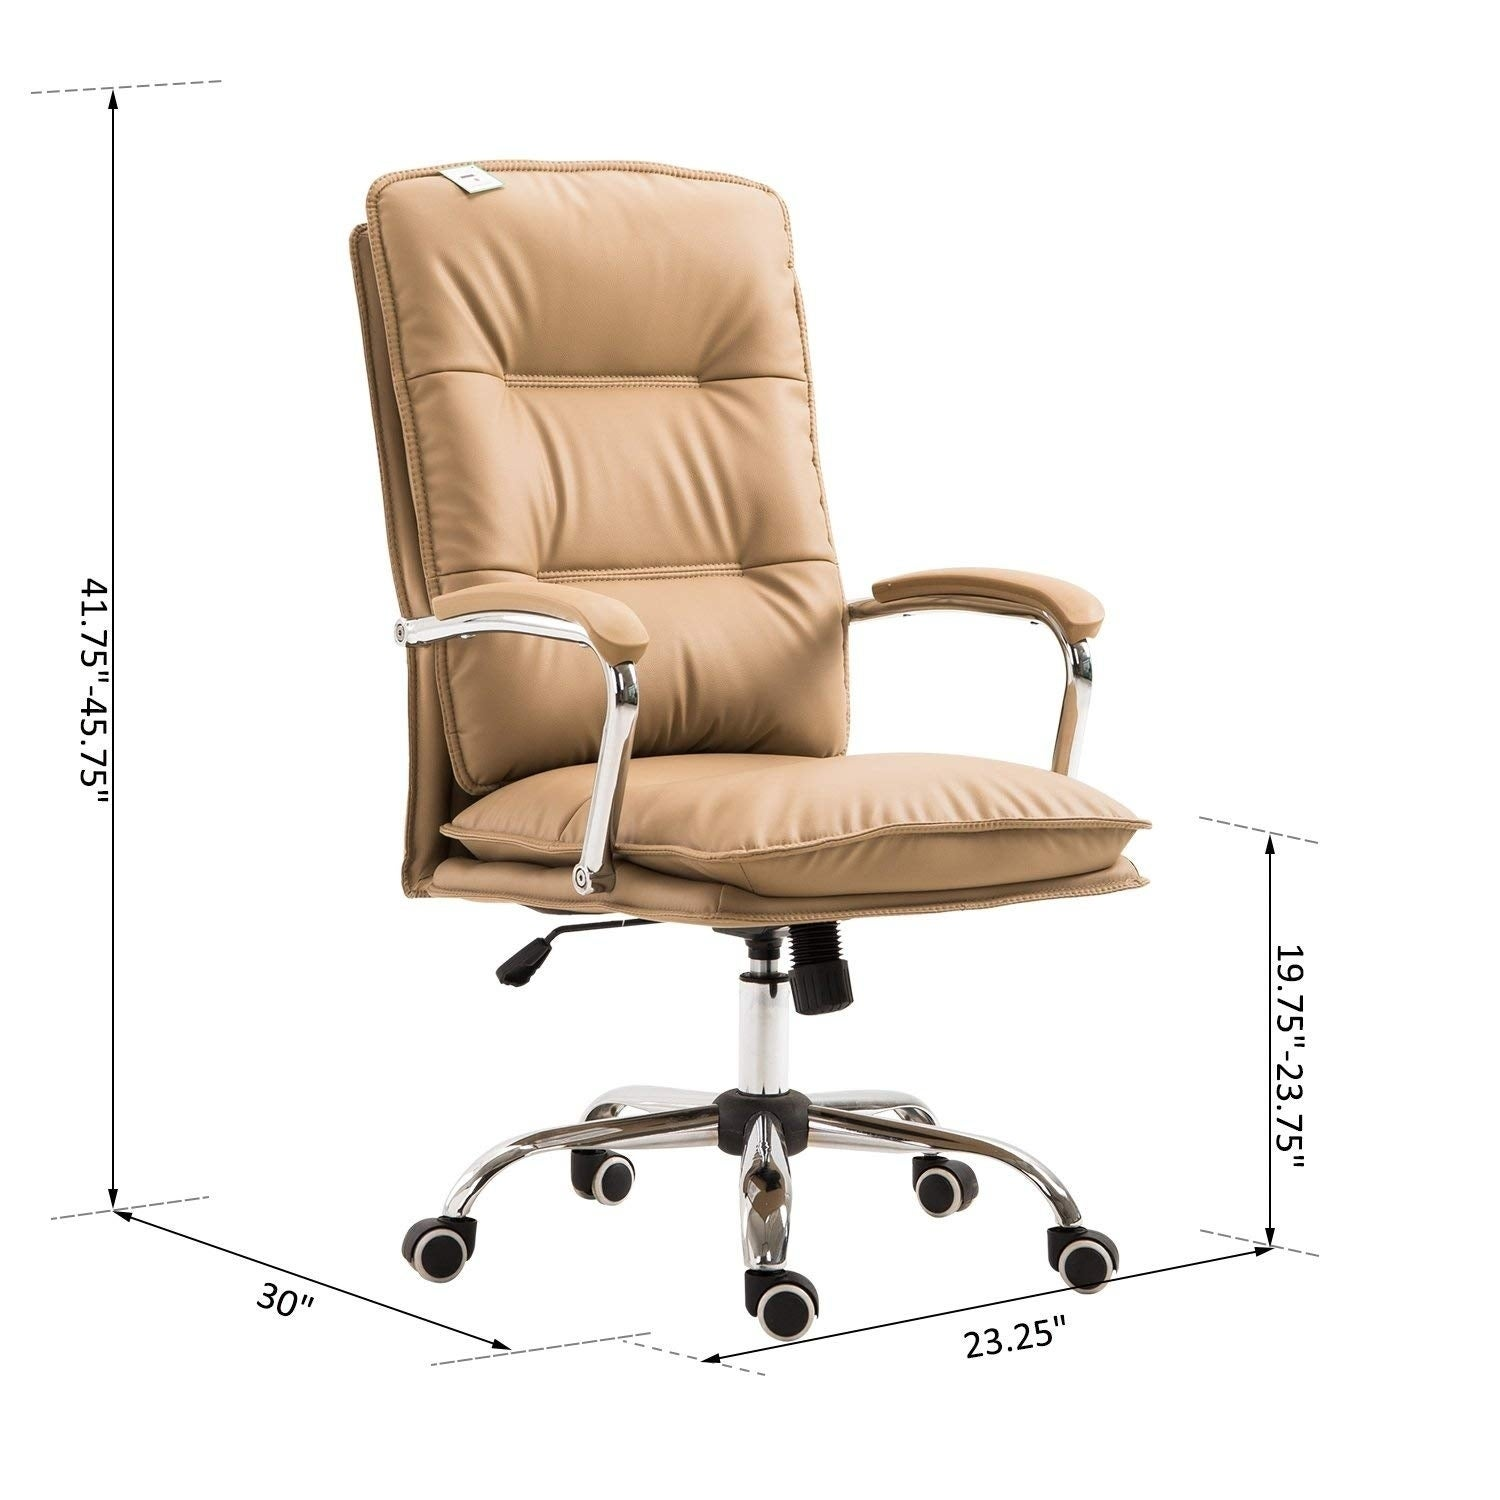 Shop Homcom High Back Pu Leather Executive Home Office Chair With Lumbar Support Light Tan Overstock 23052756